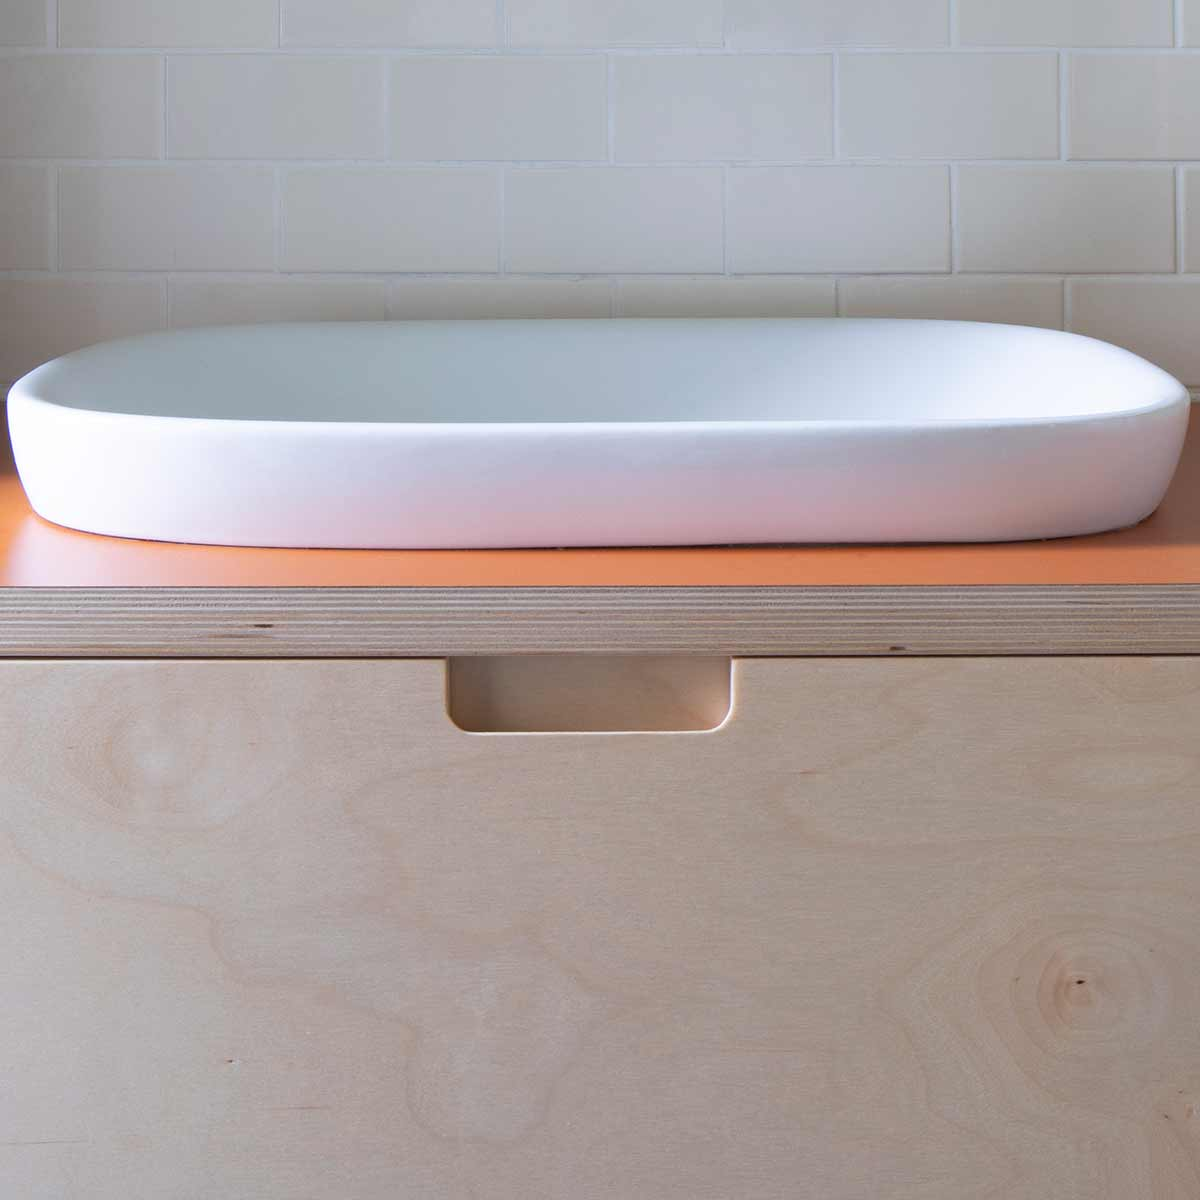 kickoffice-casa dgp bathroom sink top orange wood tiles